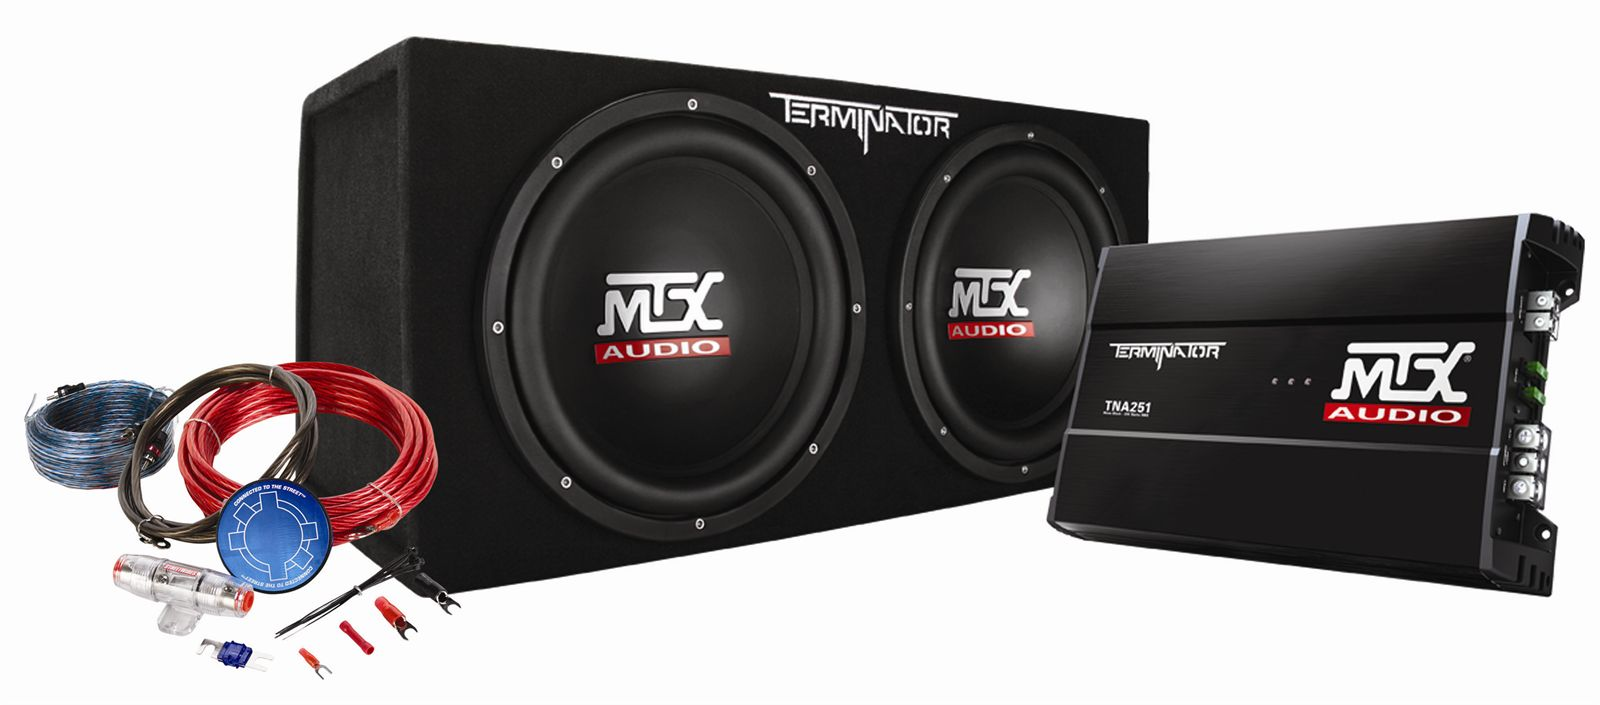 Tnp212d2kit Mtx Car Subwoofer Enclosure Amp Wiring Pckg Audio Diagram Home Theater Amplifier 5 1 Serious About Sound